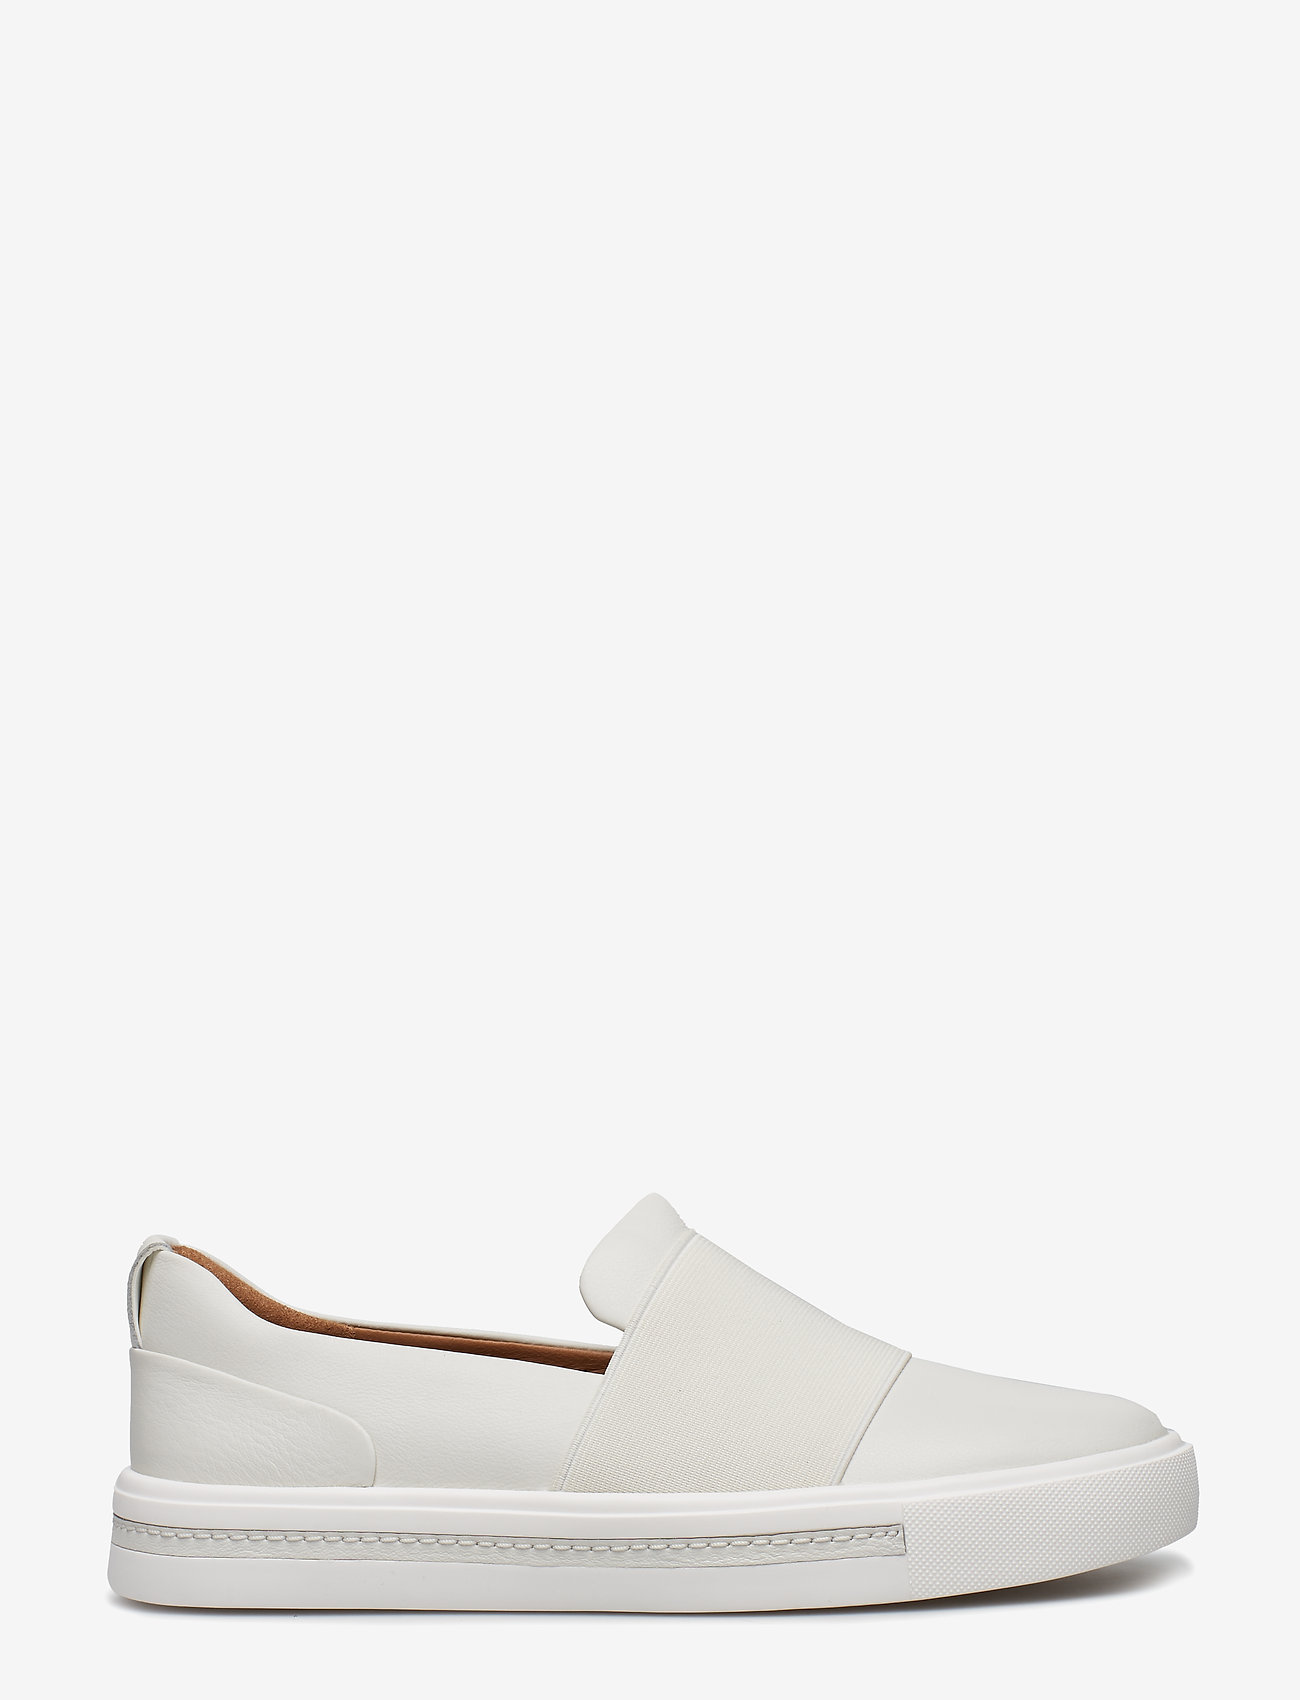 Clarks - Un Maui Step - slip-on sneakers - white leather - 1